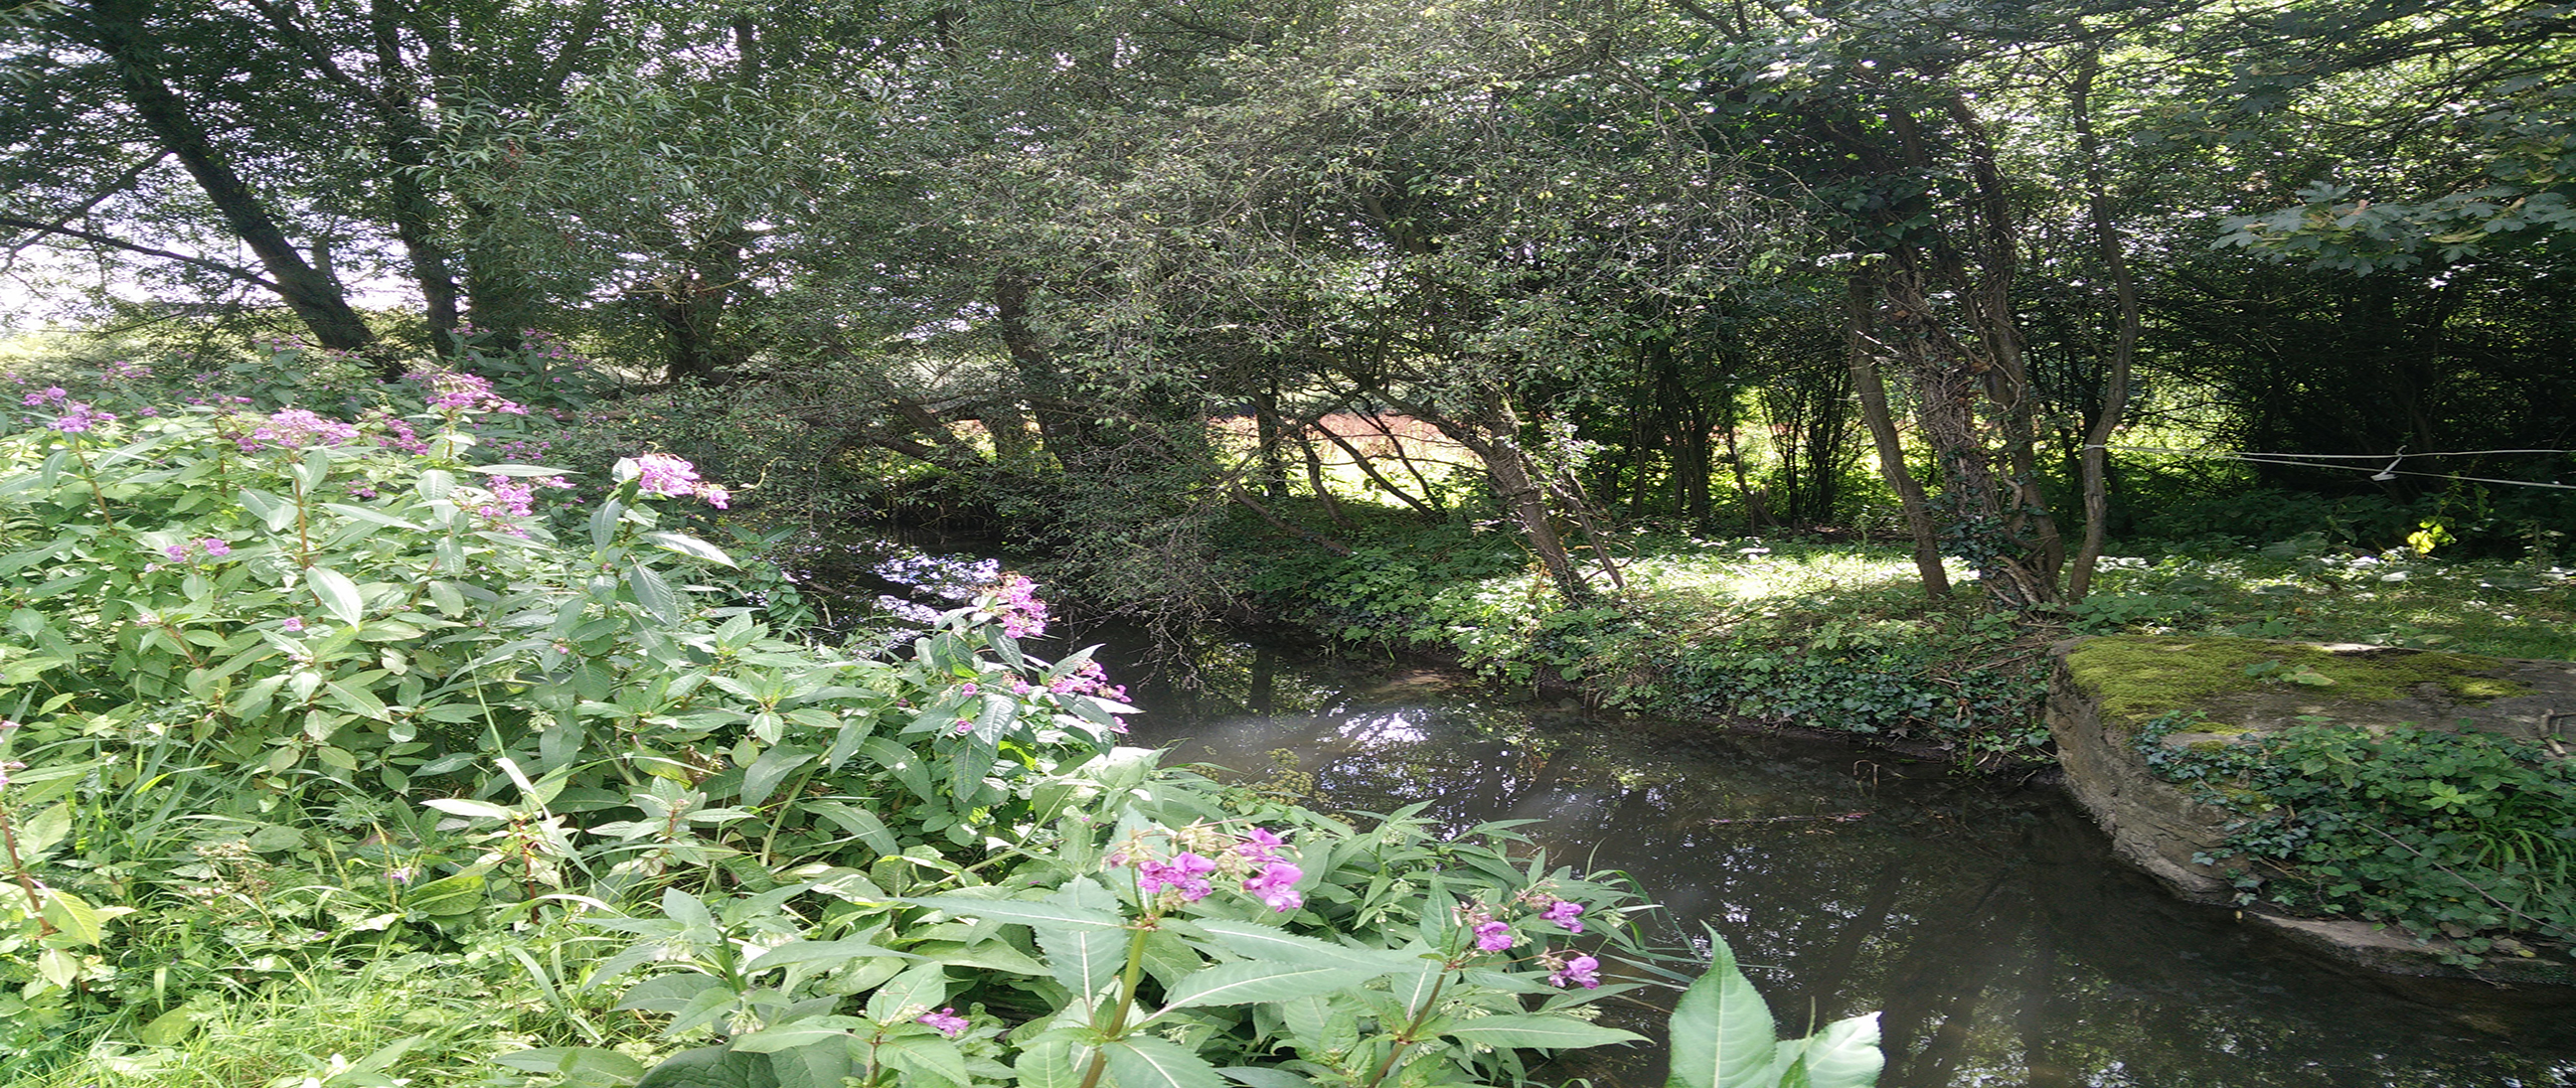 Join us for Walking stories along the River Frome